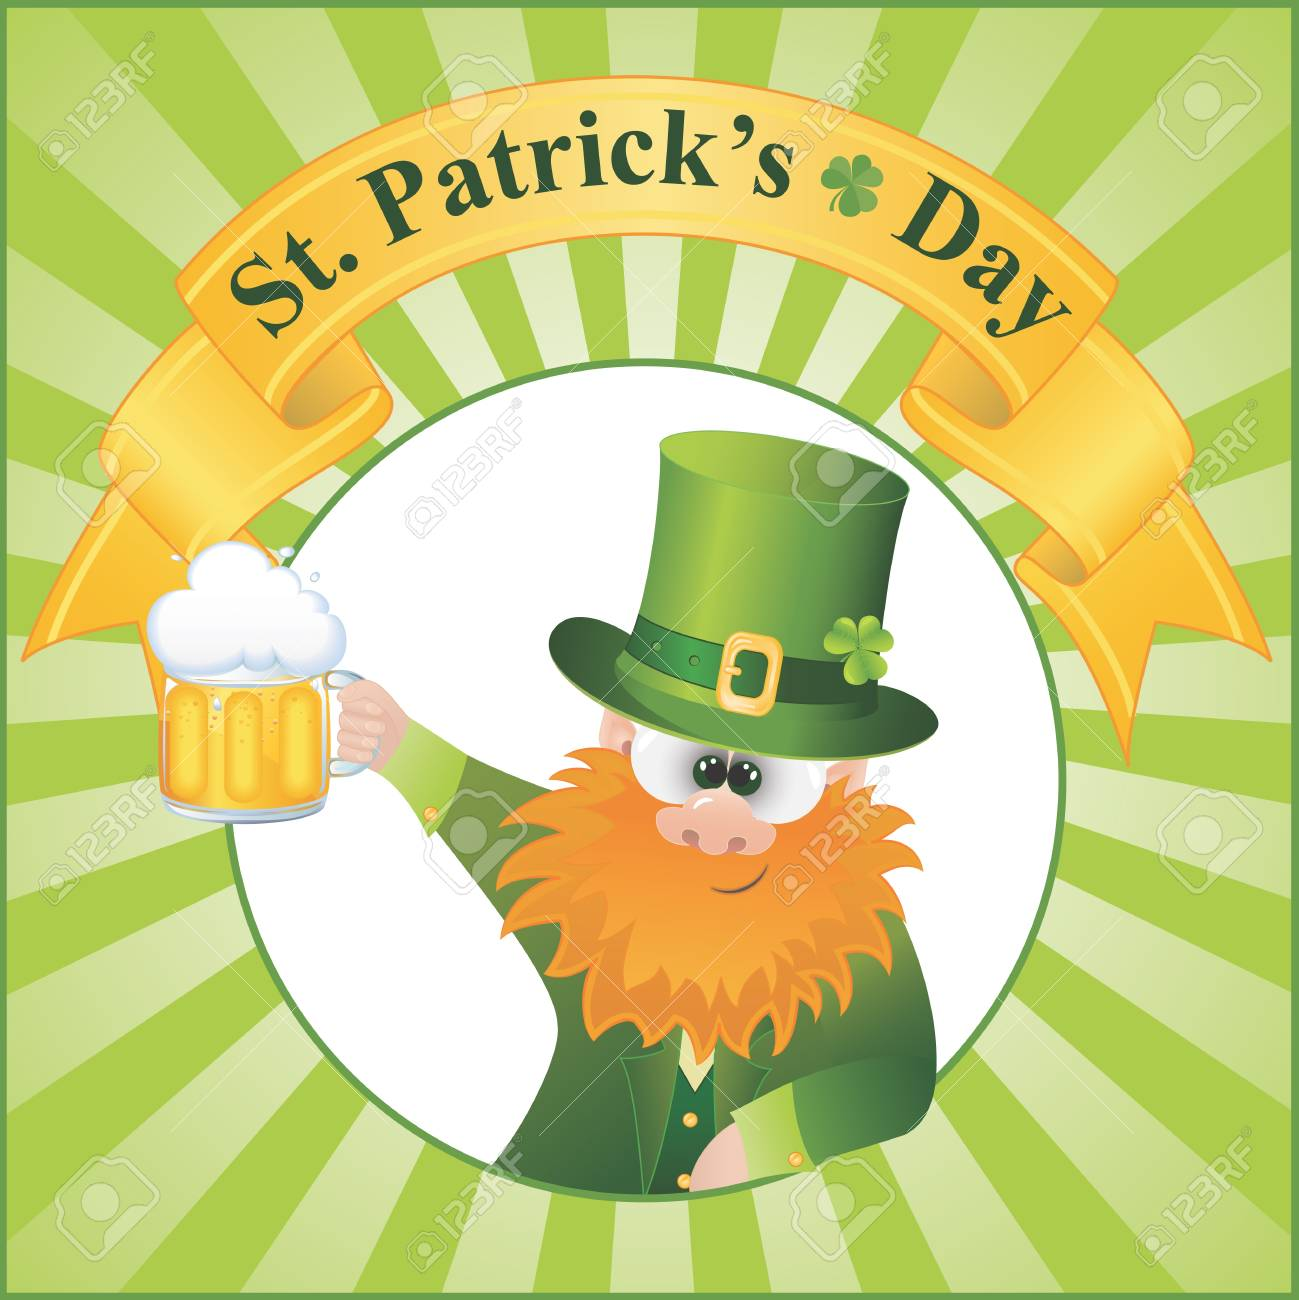 St  Patrick s Day vector Illustration  EPS 8 Stock Vector - 12495089